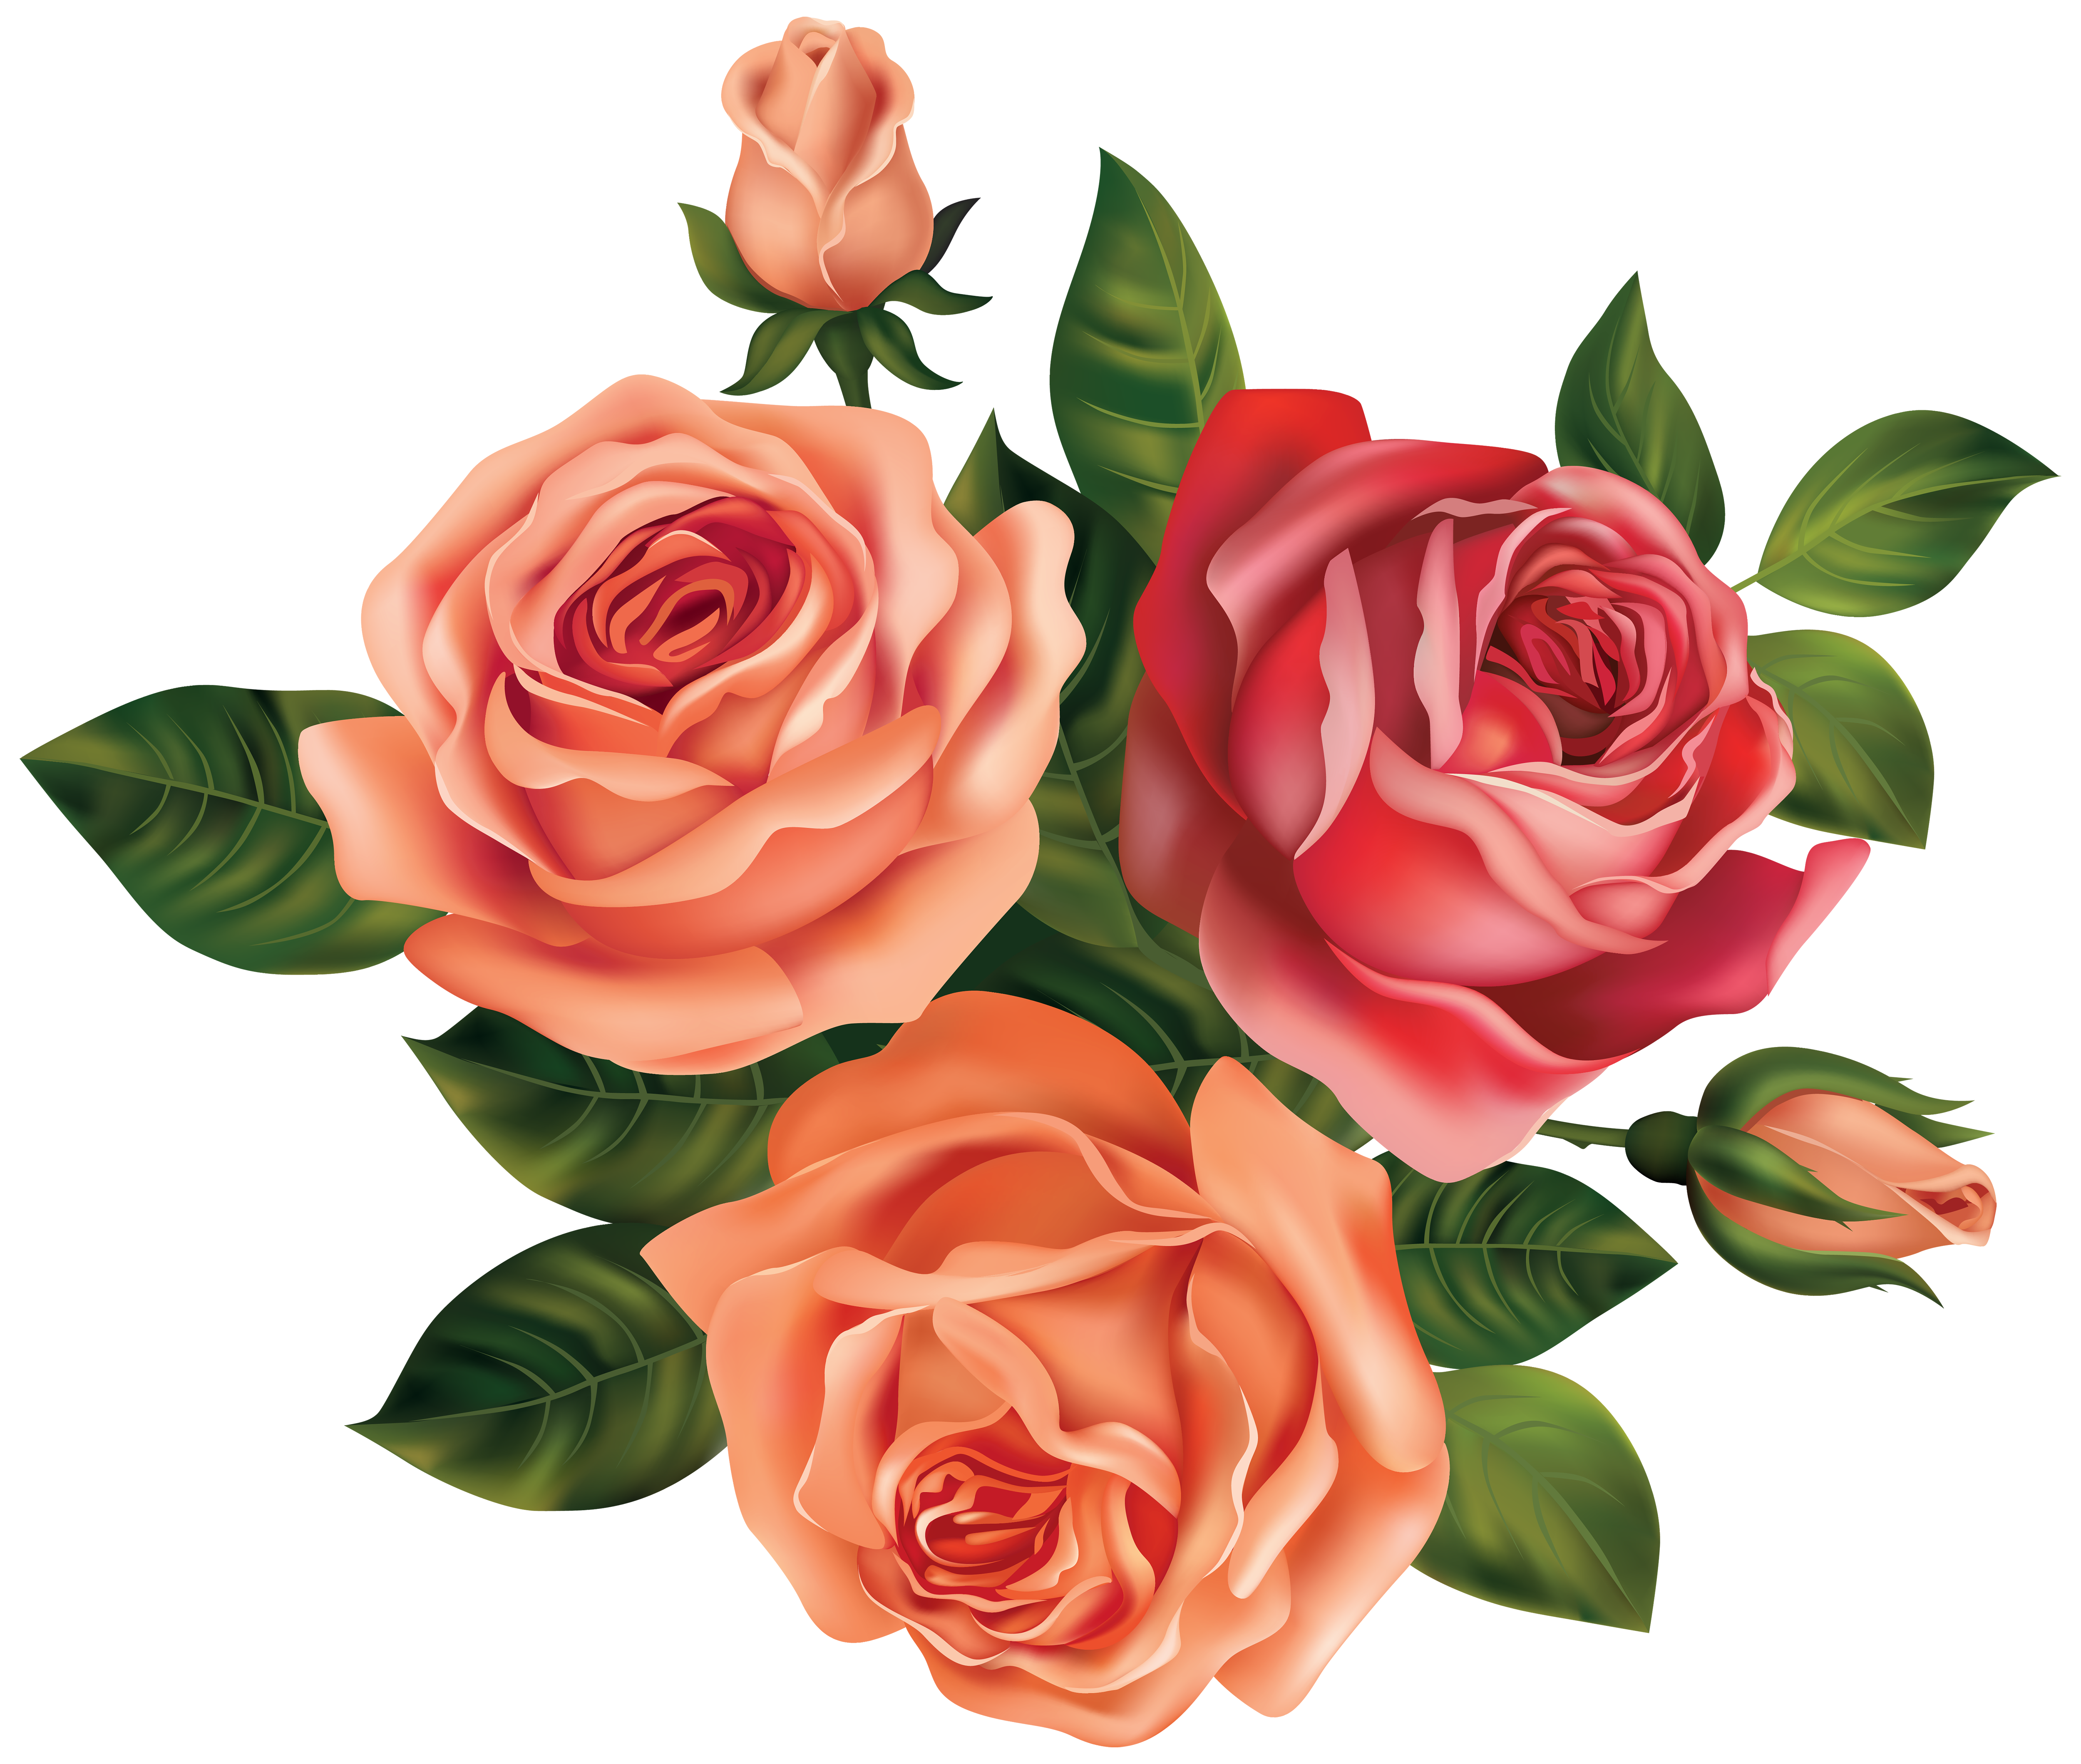 Roses clipart. Beautiful image gallery yopriceville